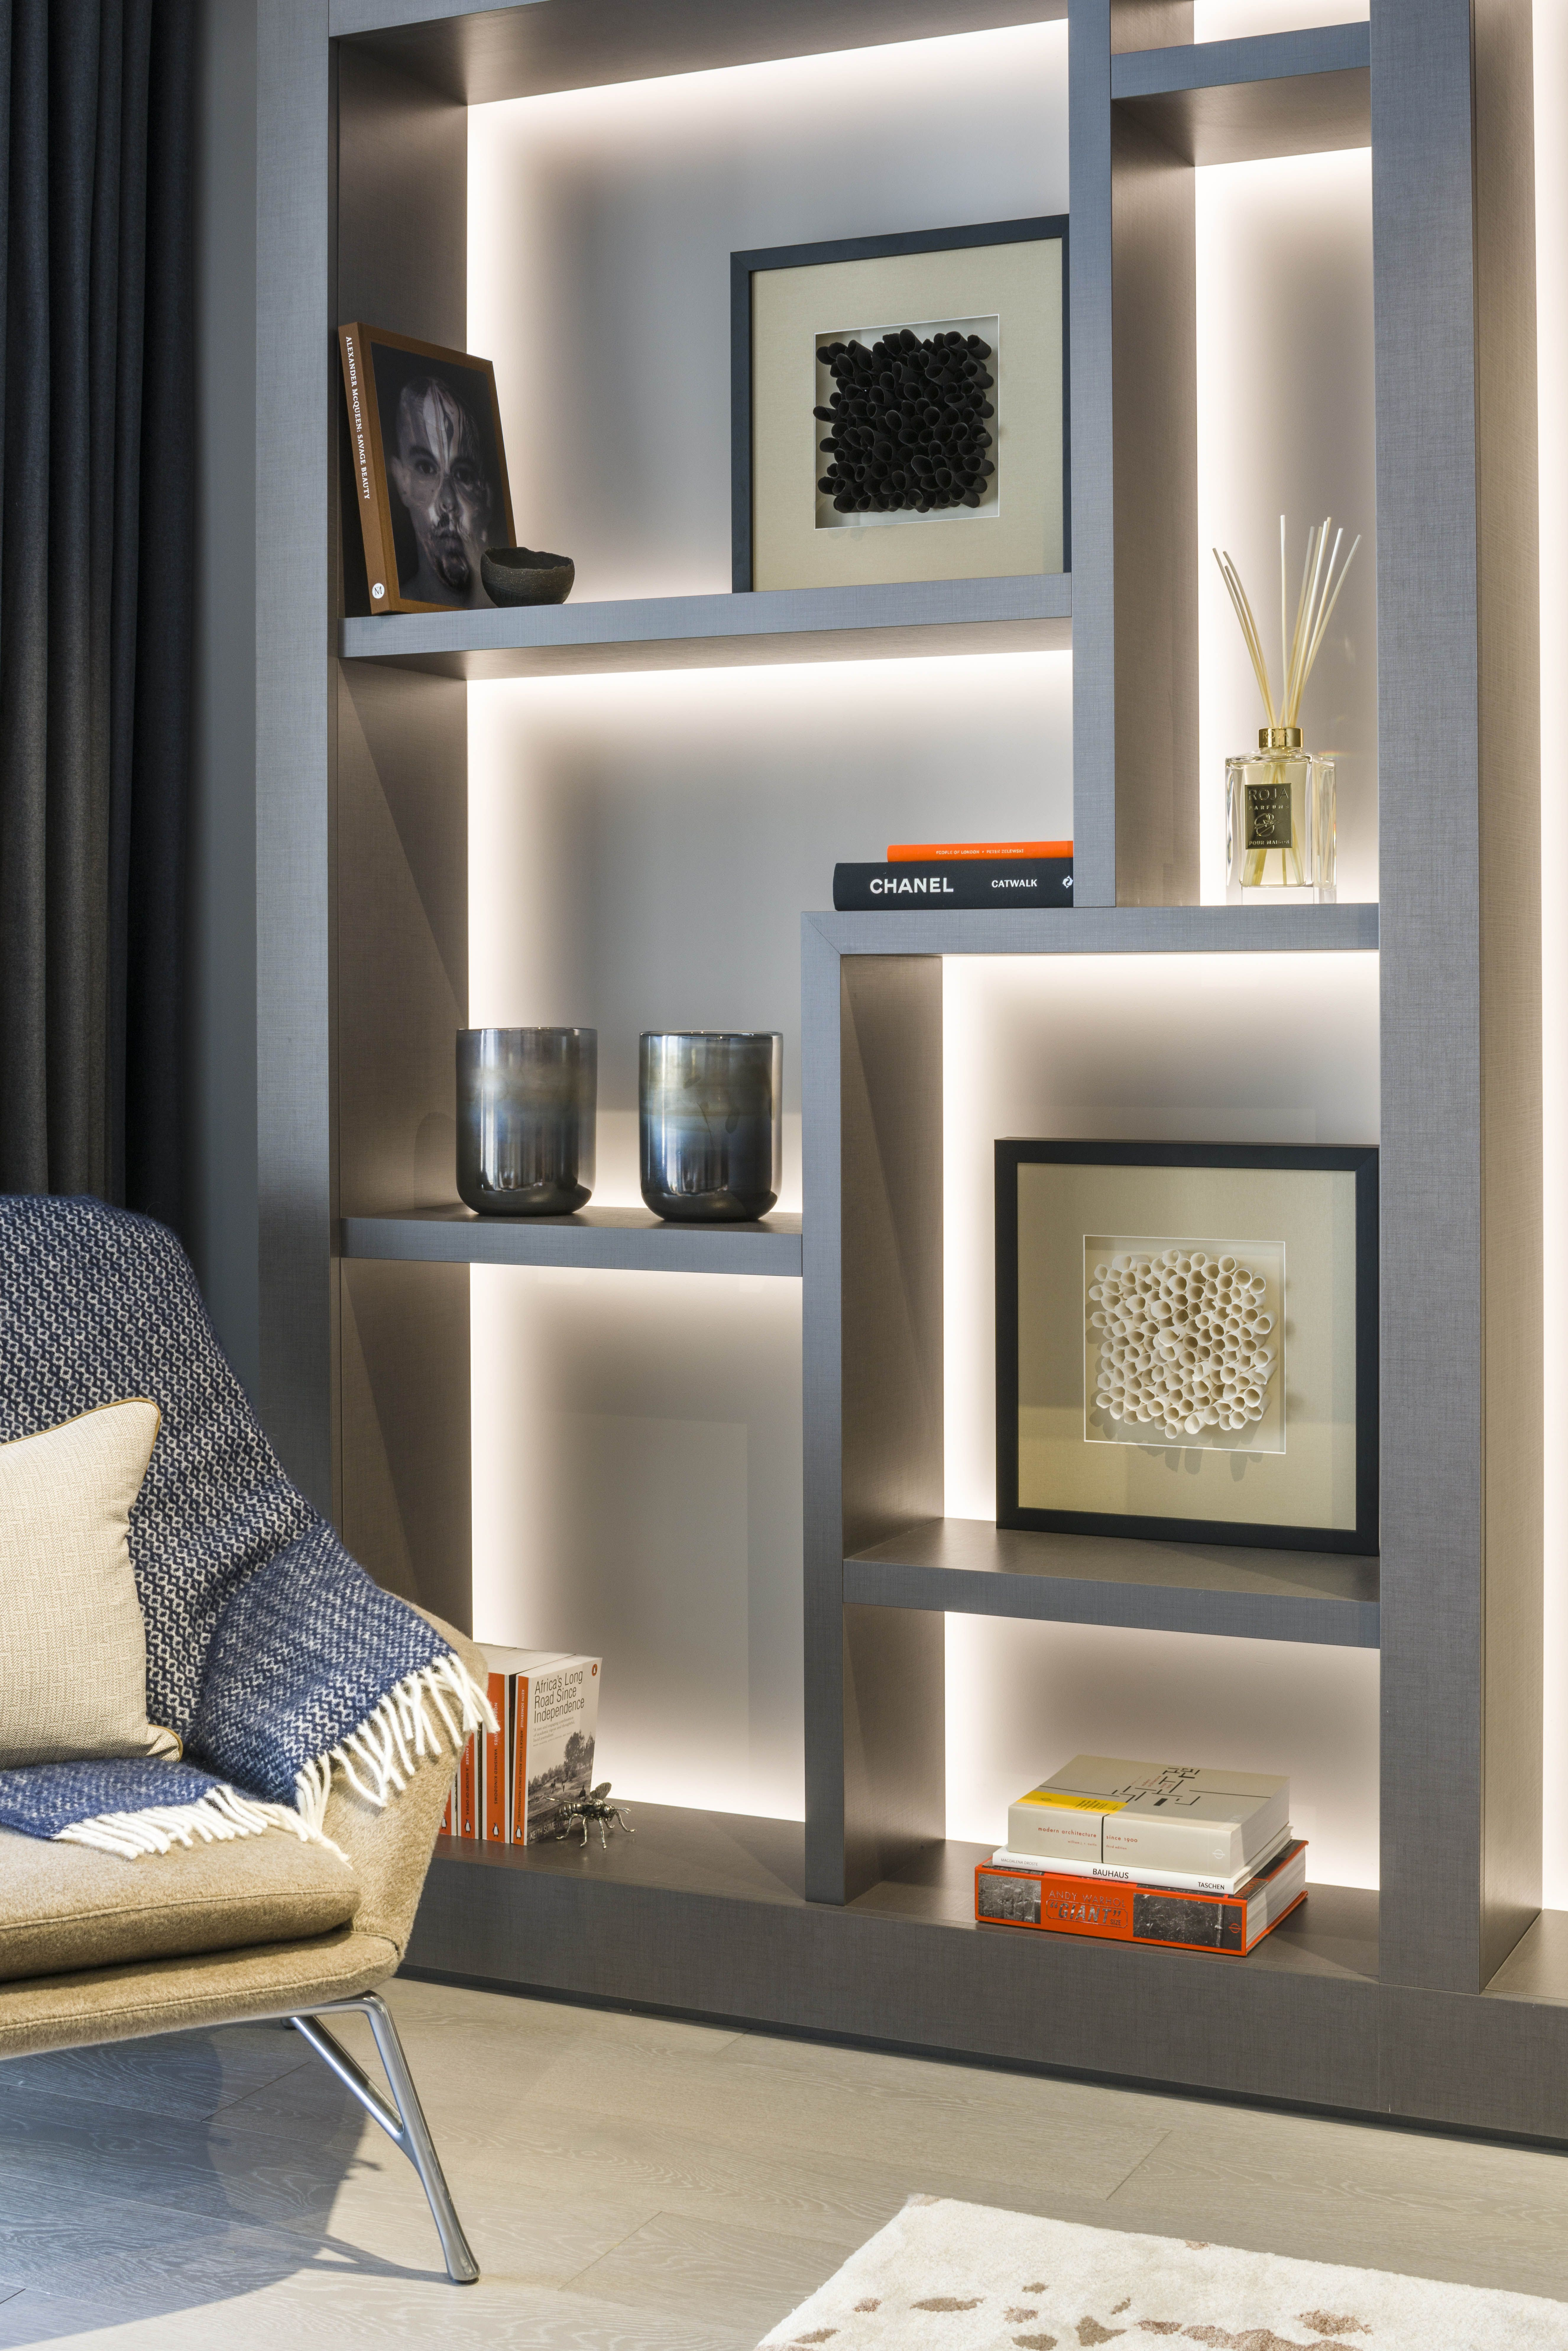 Home Tv Room Design Ideas: Pin By GODDARD LITTLEFAIR On PROJECT